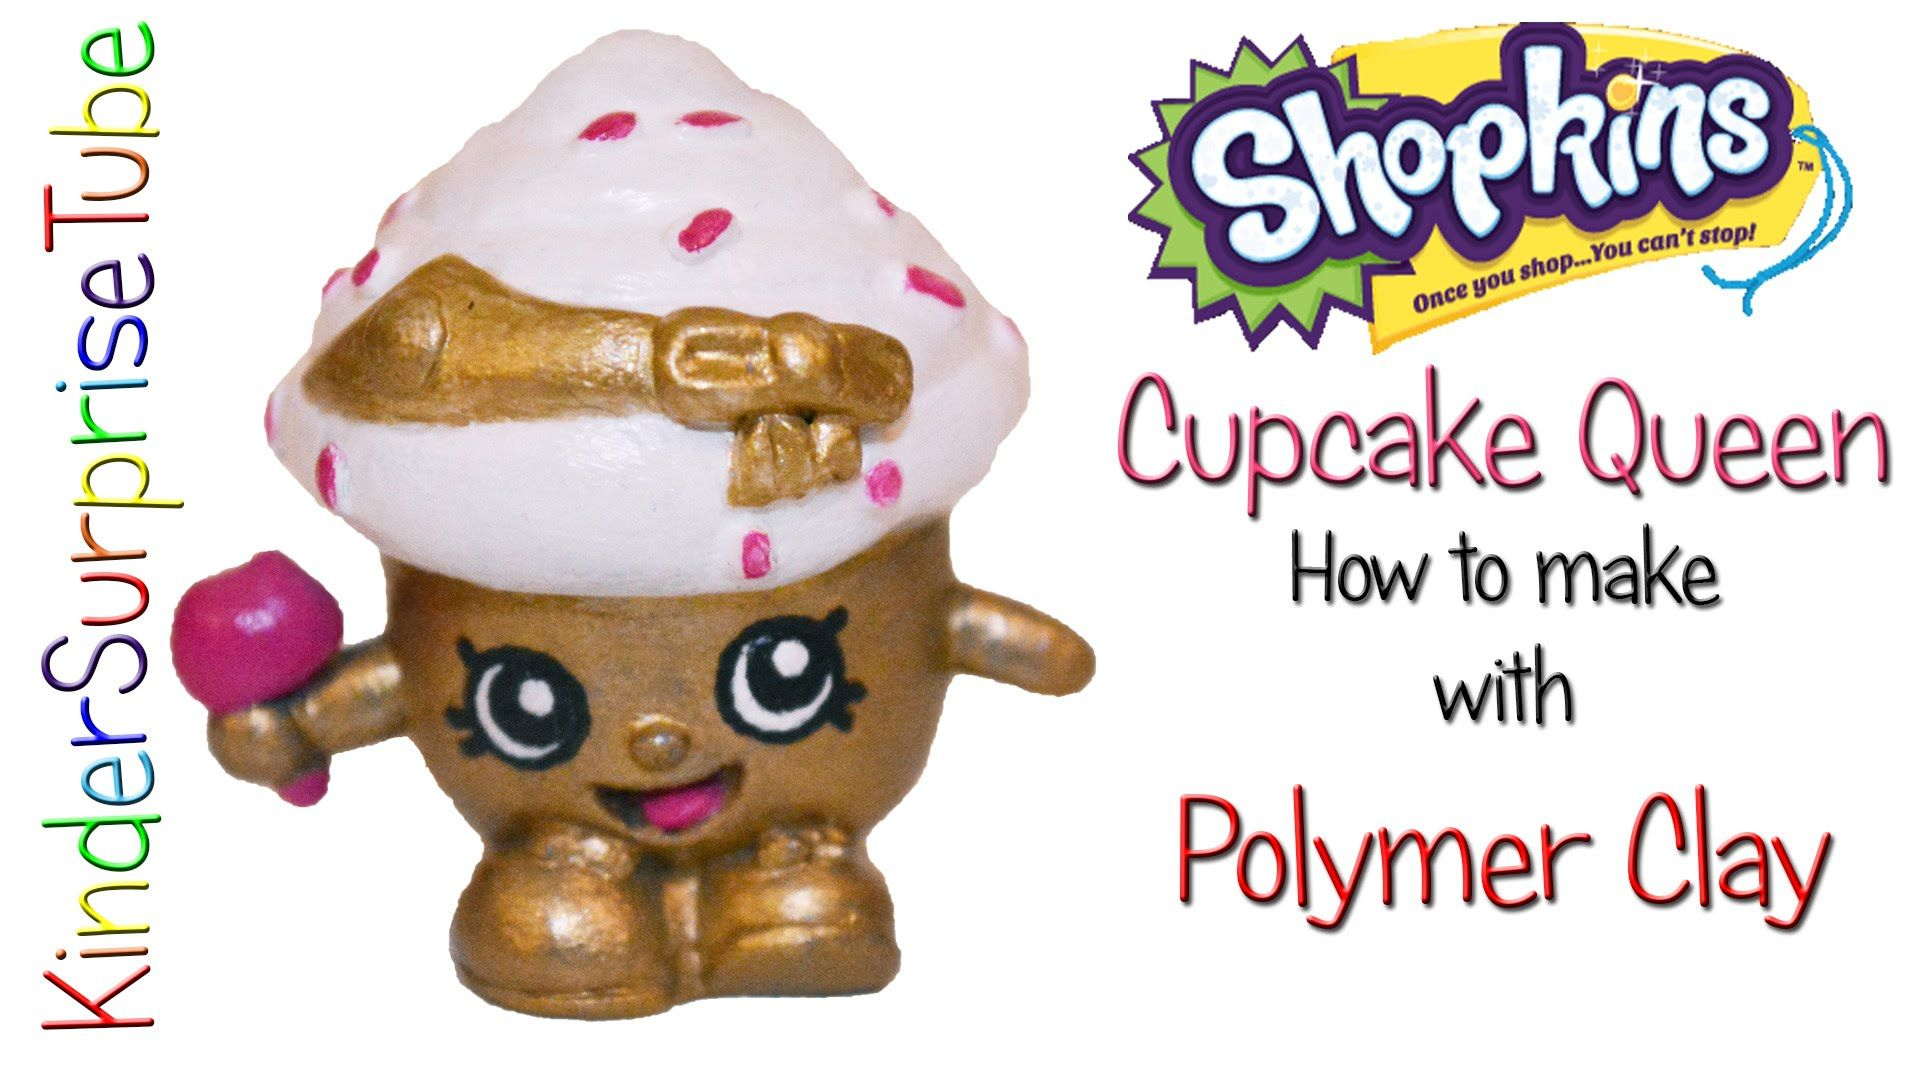 Sh shopkins coloring pages cupcake - Shopkins Limited Edition Cupcake Queen How To Make With Polymer Clay Sho